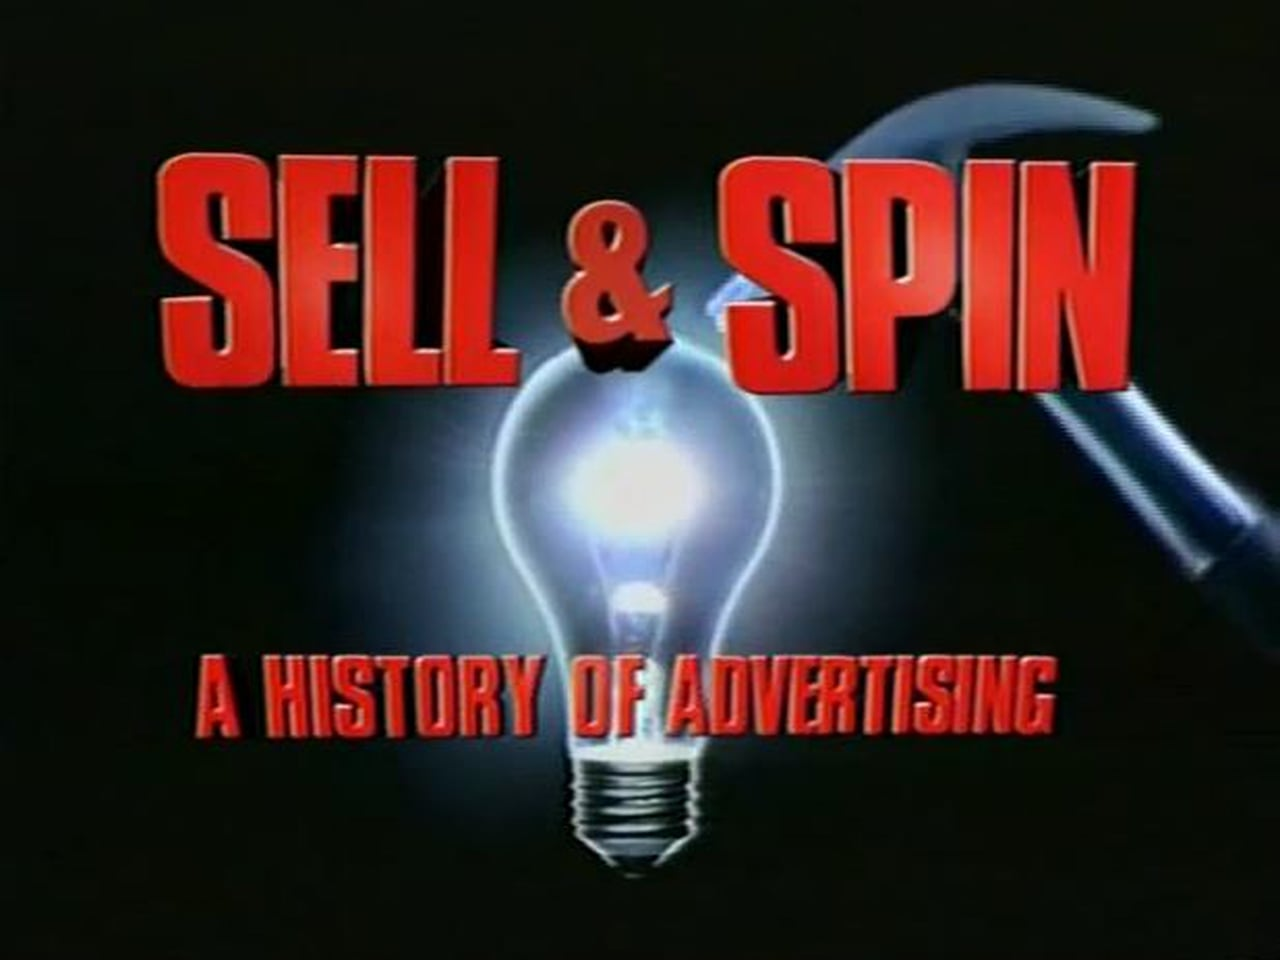 advertising helps to sell products essay Children as consumers: advertising and marketing branded characters popular animated characters used to sell products children as consumers: advertising and.